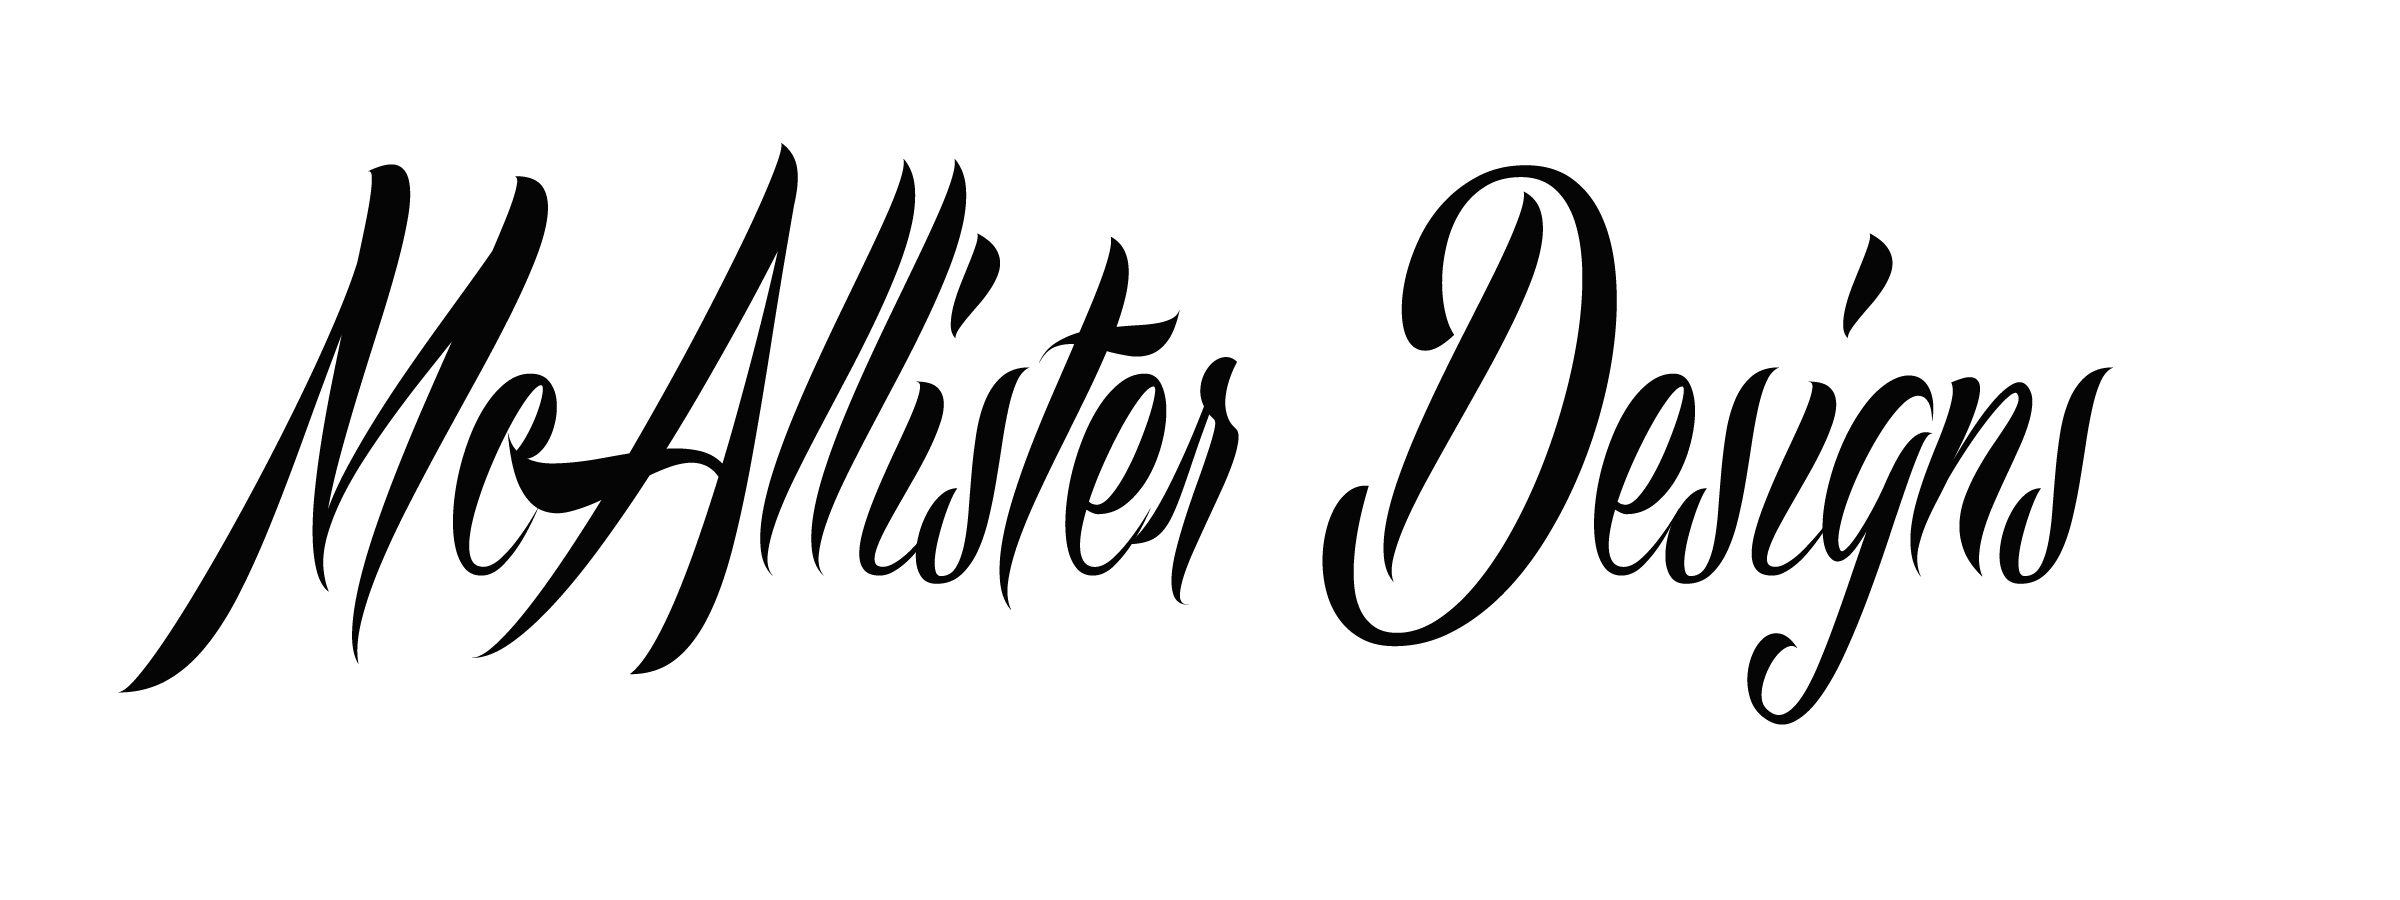 mcallister designs's Signature